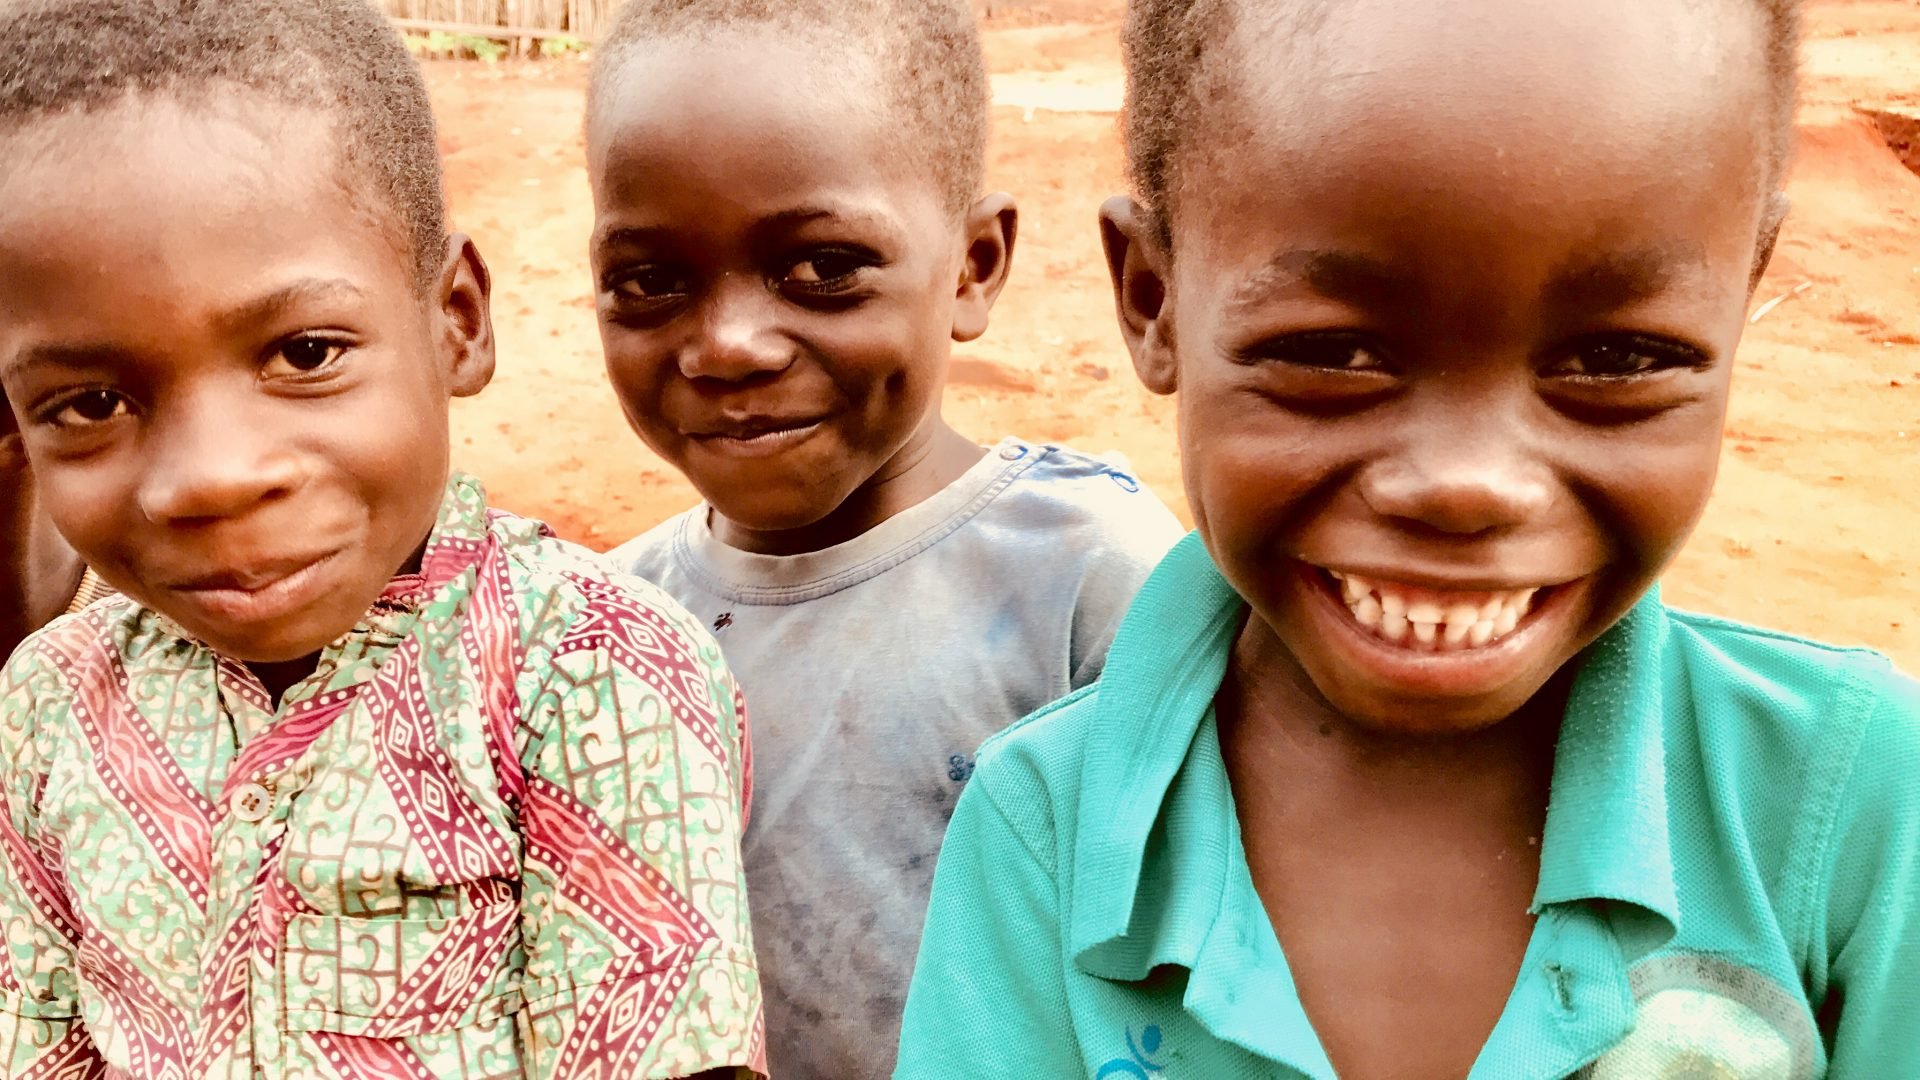 June 16: International Day of the African Child